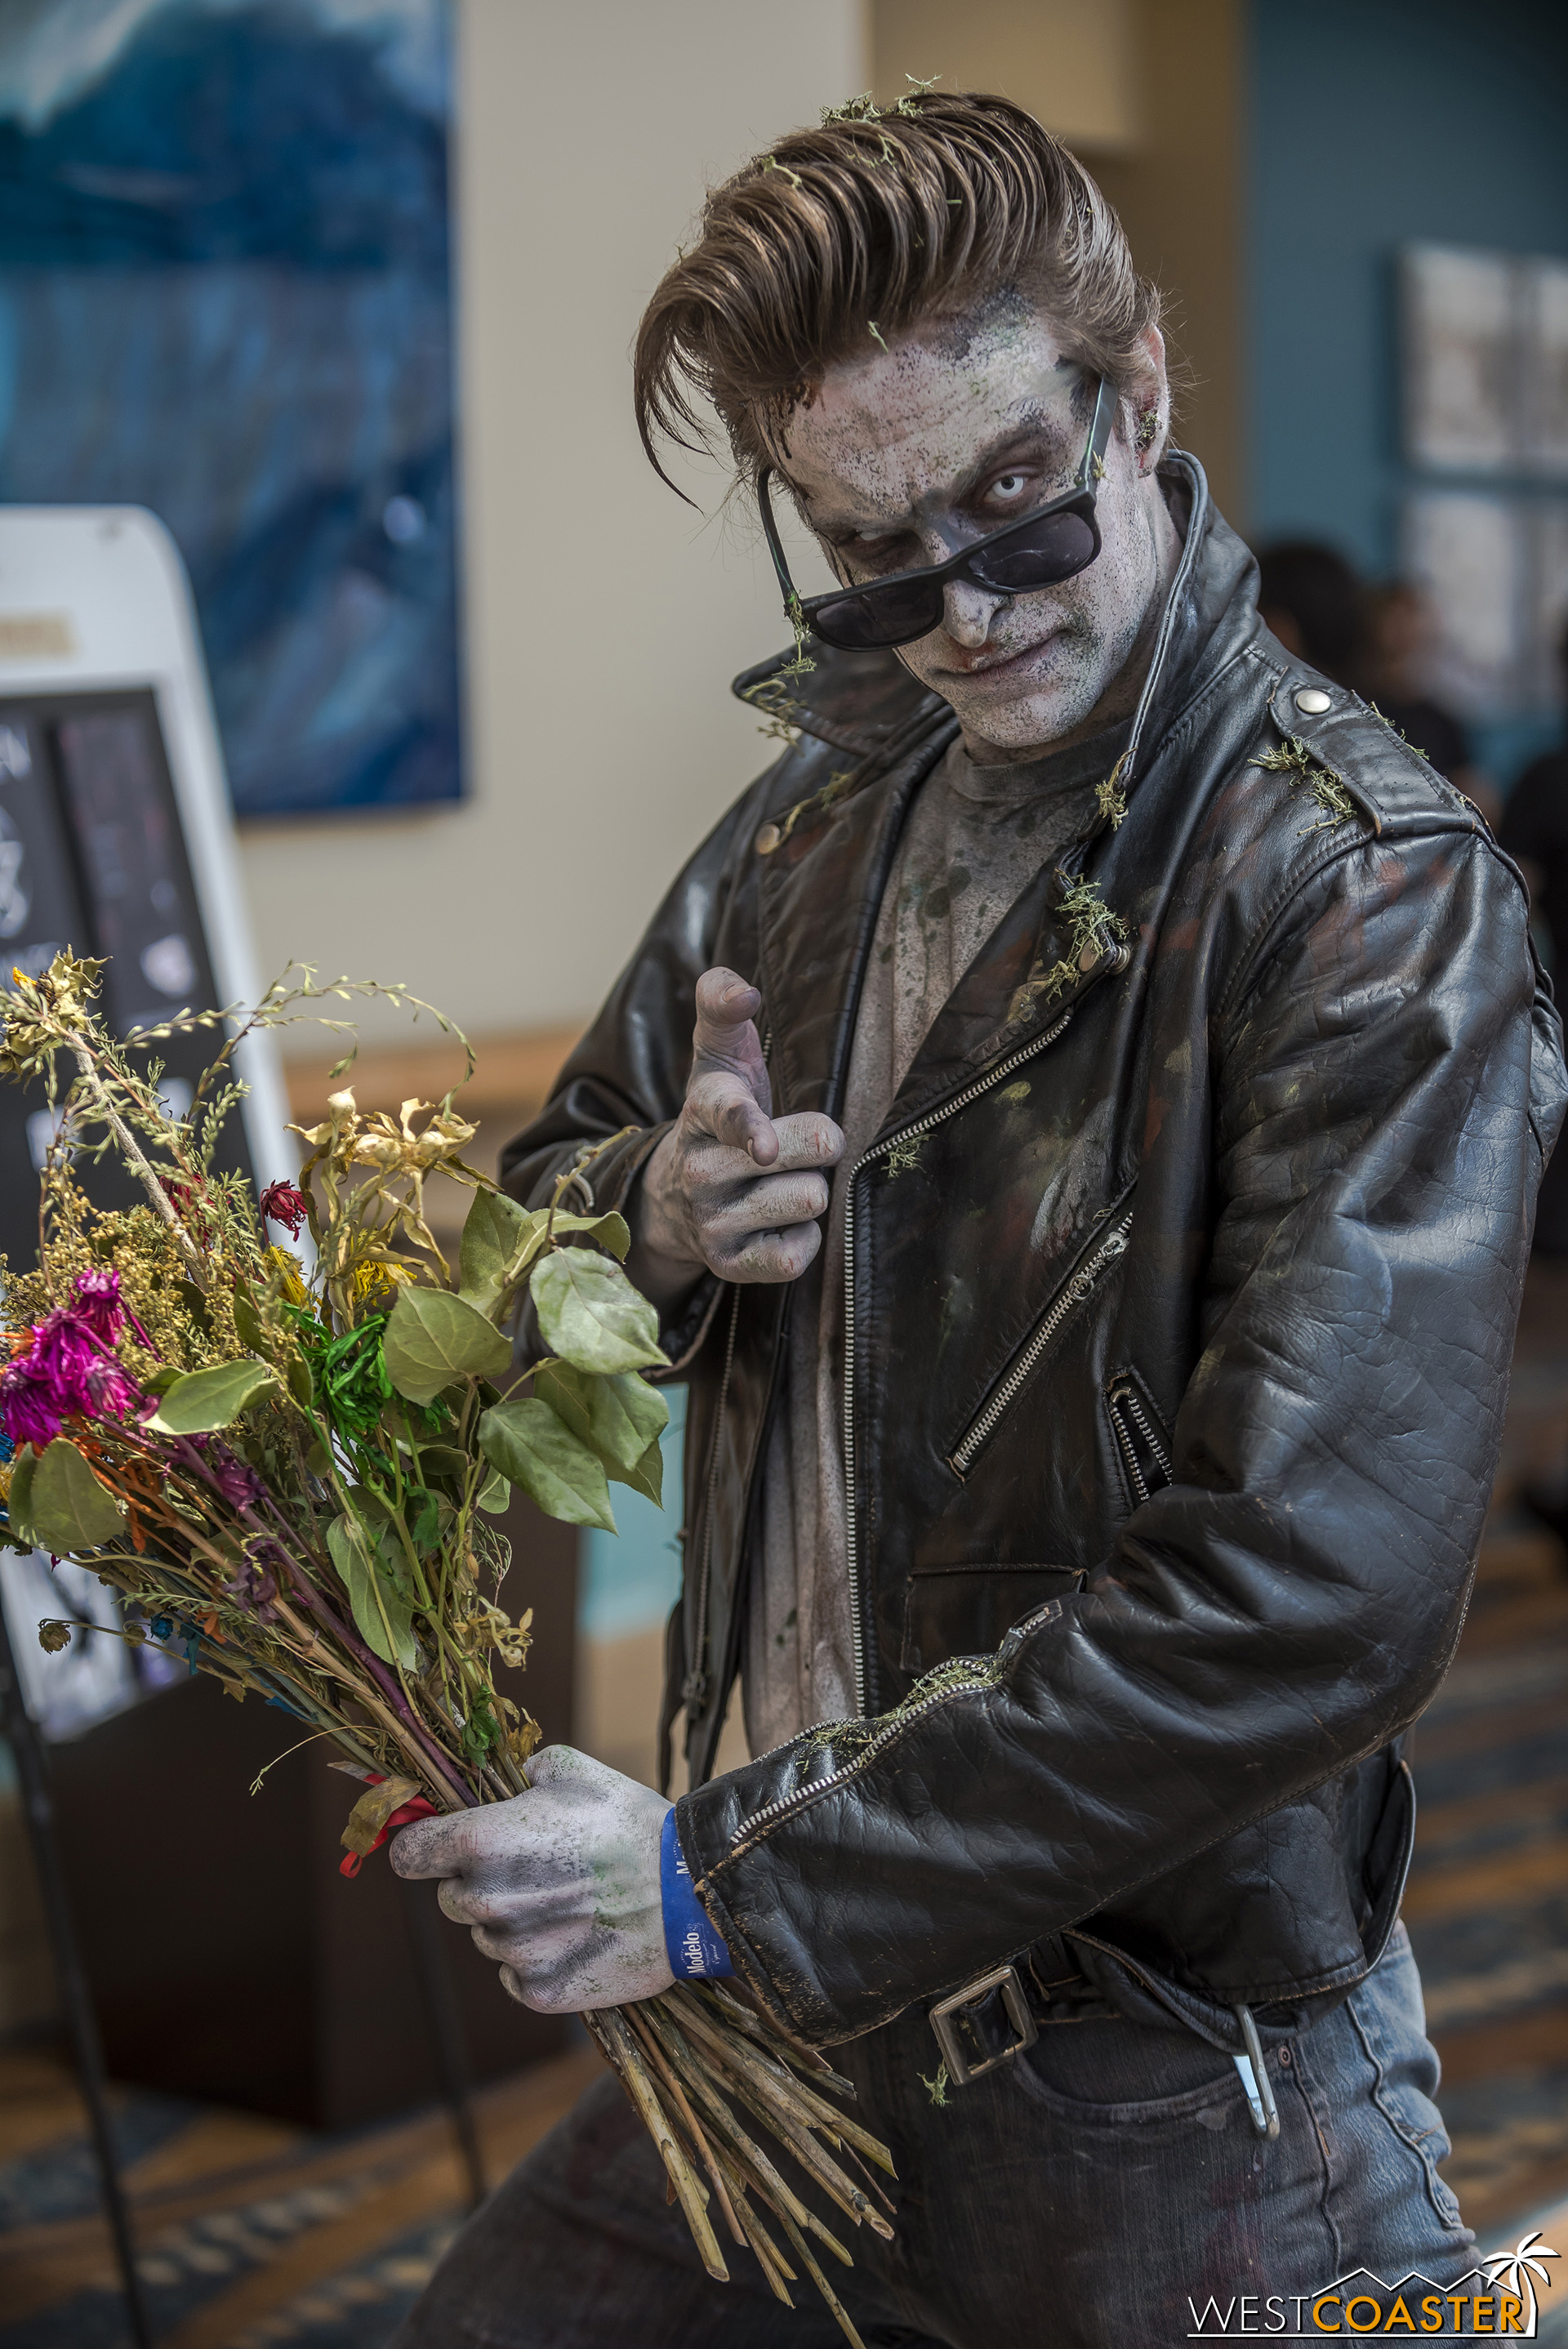 Zombie greaser was most charismatic.